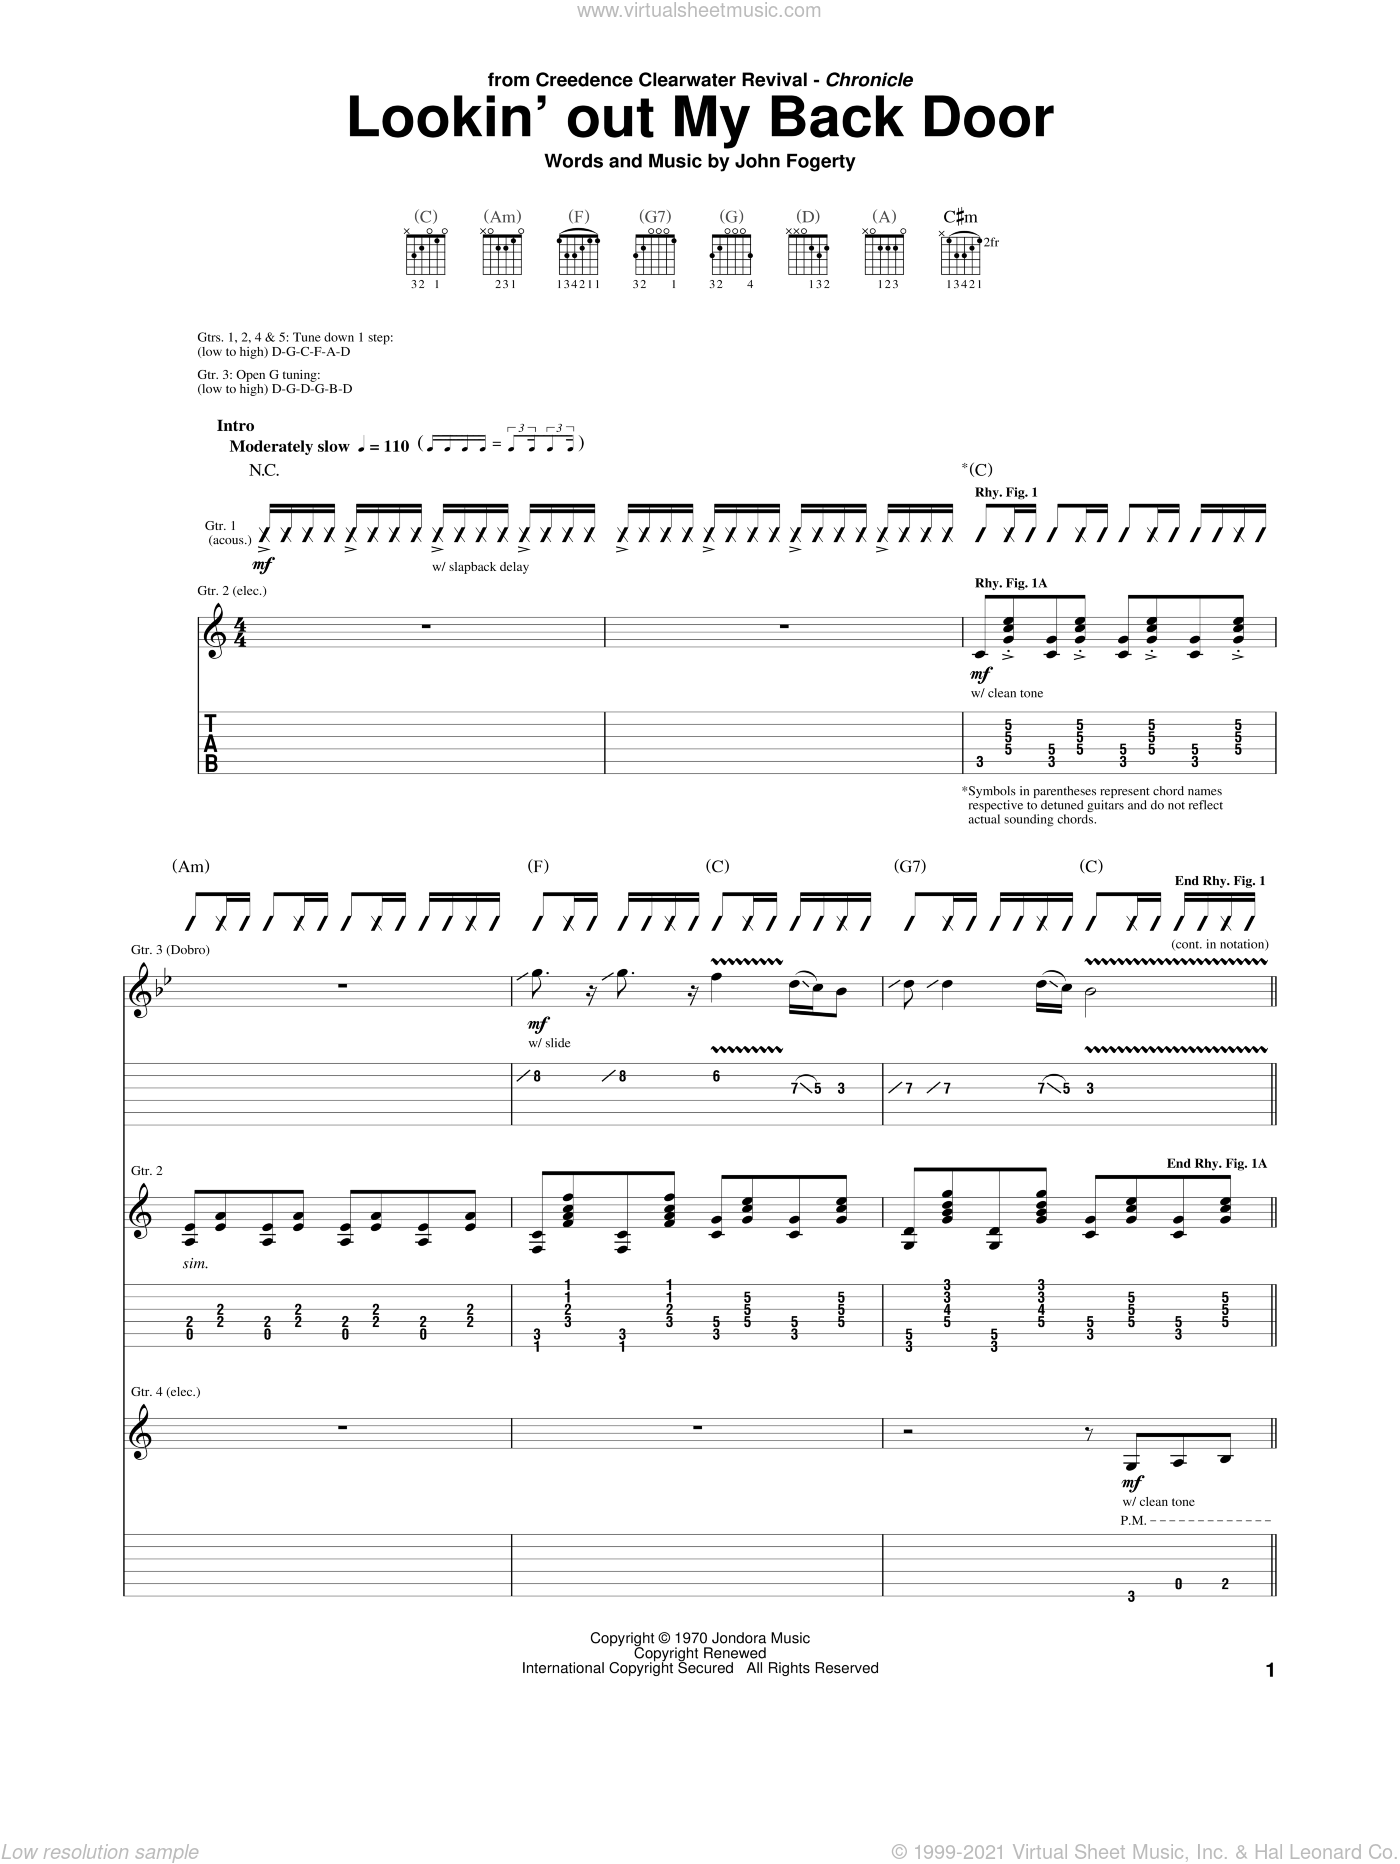 Lookin' Out My Back Door sheet music for guitar (tablature) by John Fogerty and Creedence Clearwater Revival. Score Image Preview.